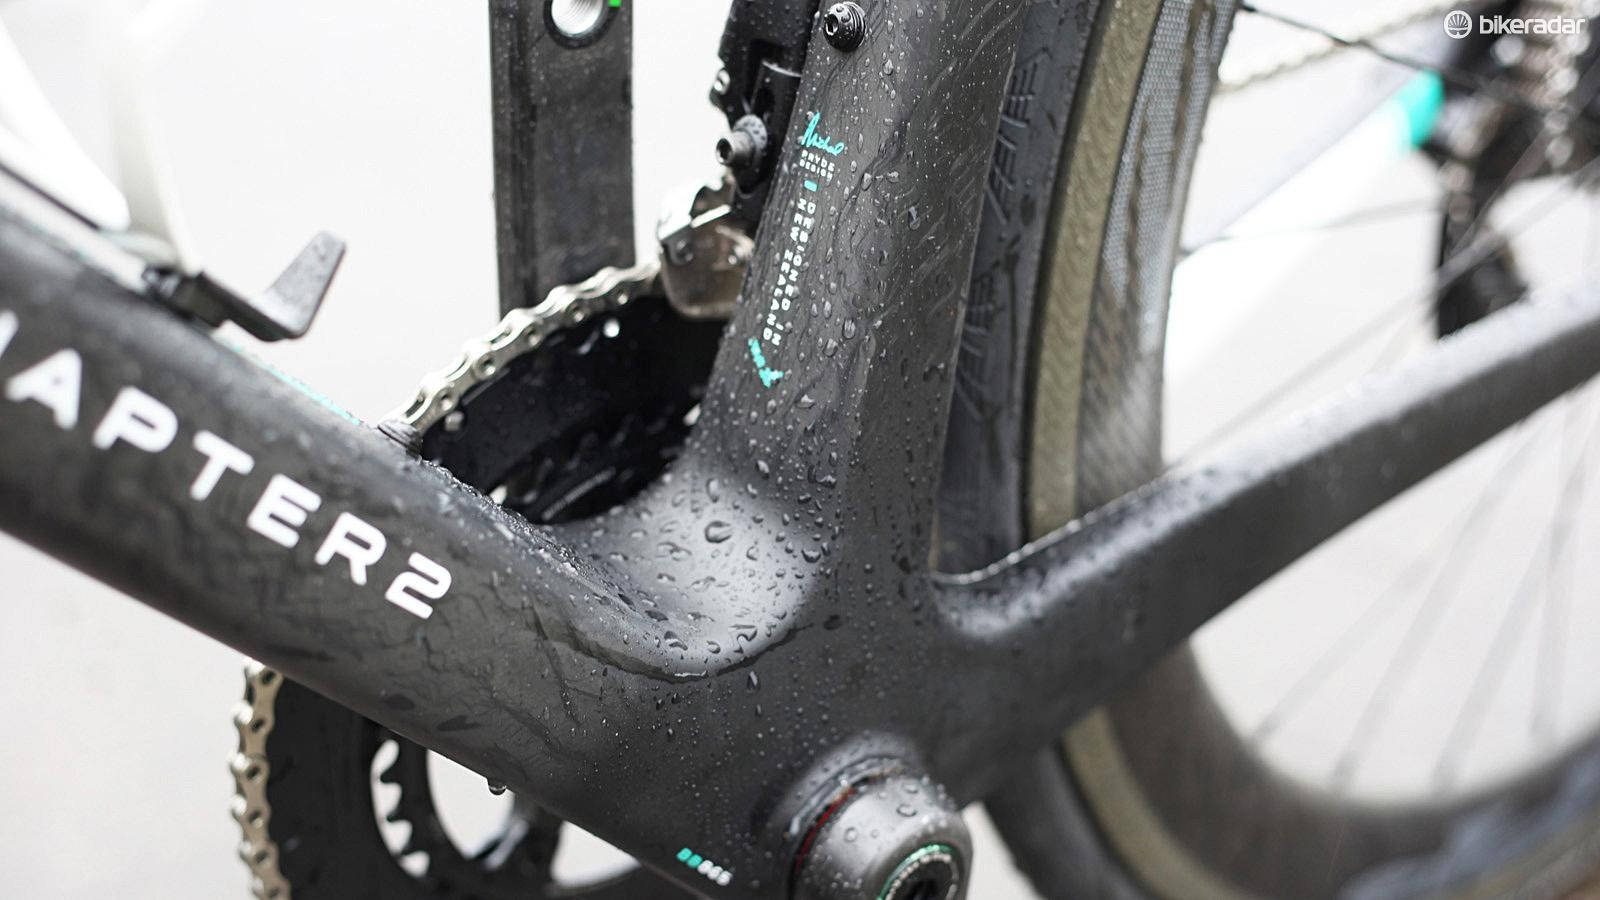 The boxy bottom bracket is moulded using a PU mandrel, which Chapter claims improves the strength and stiffness while controlling the weight